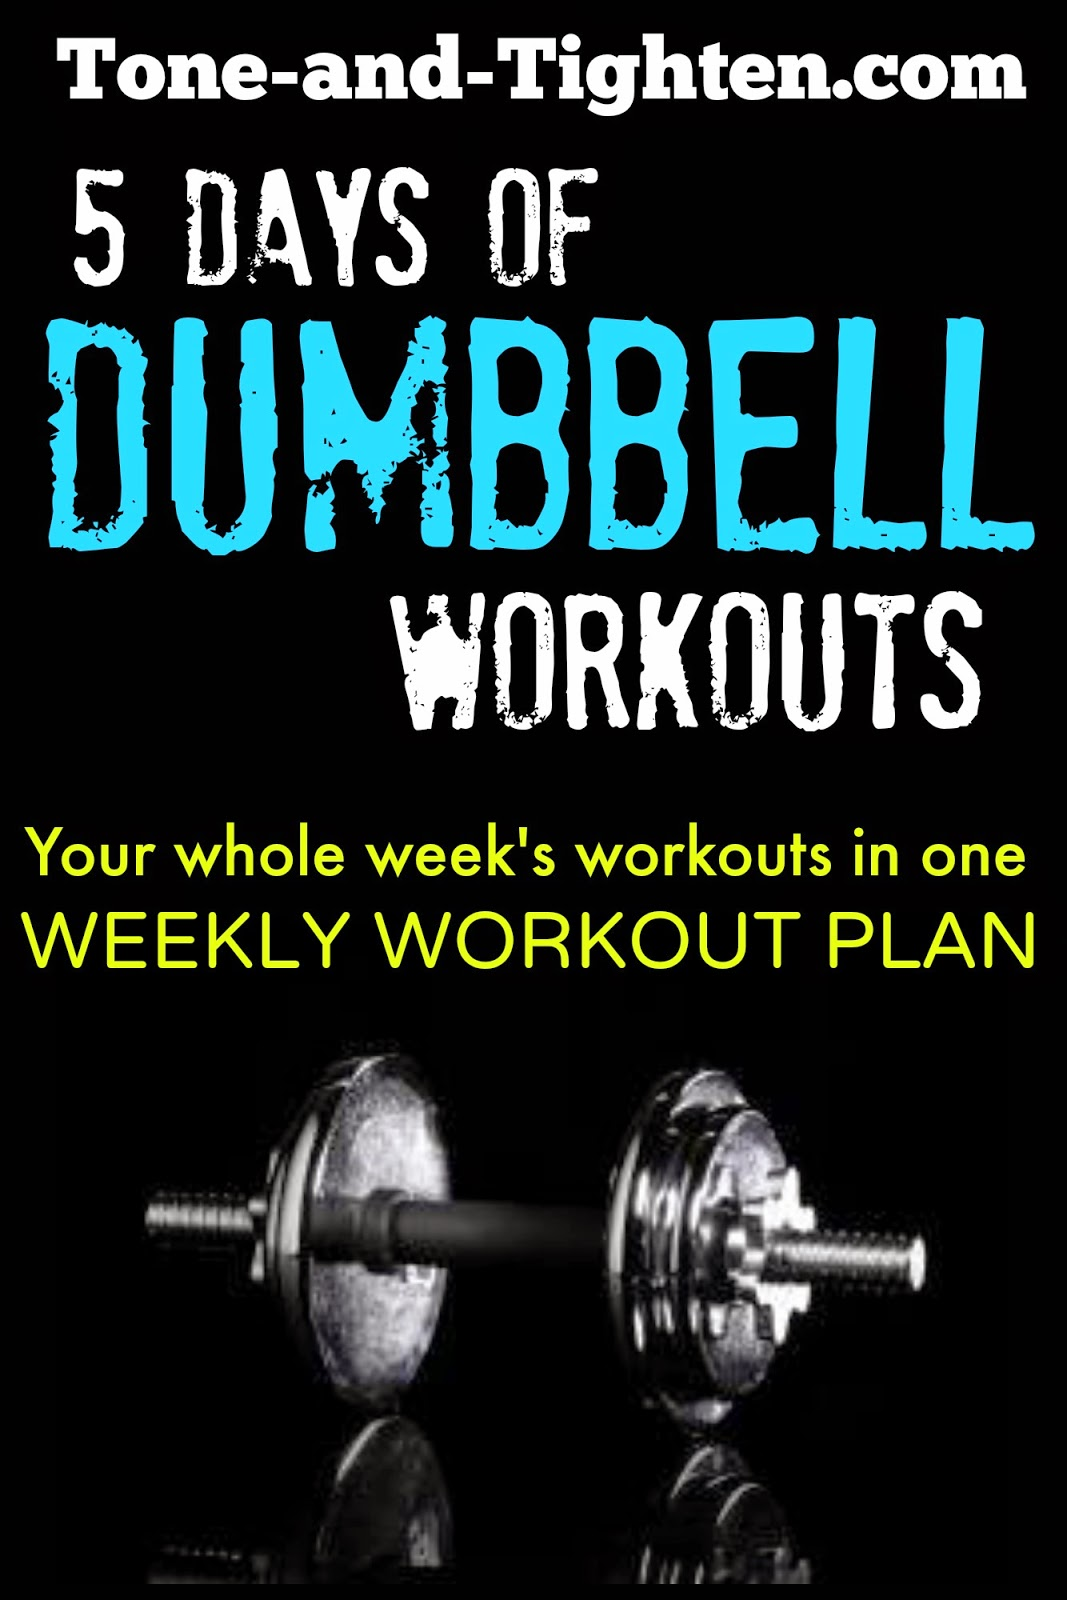 Weekly Workout Plan 5 Days Of Great Dumbbell Workouts To